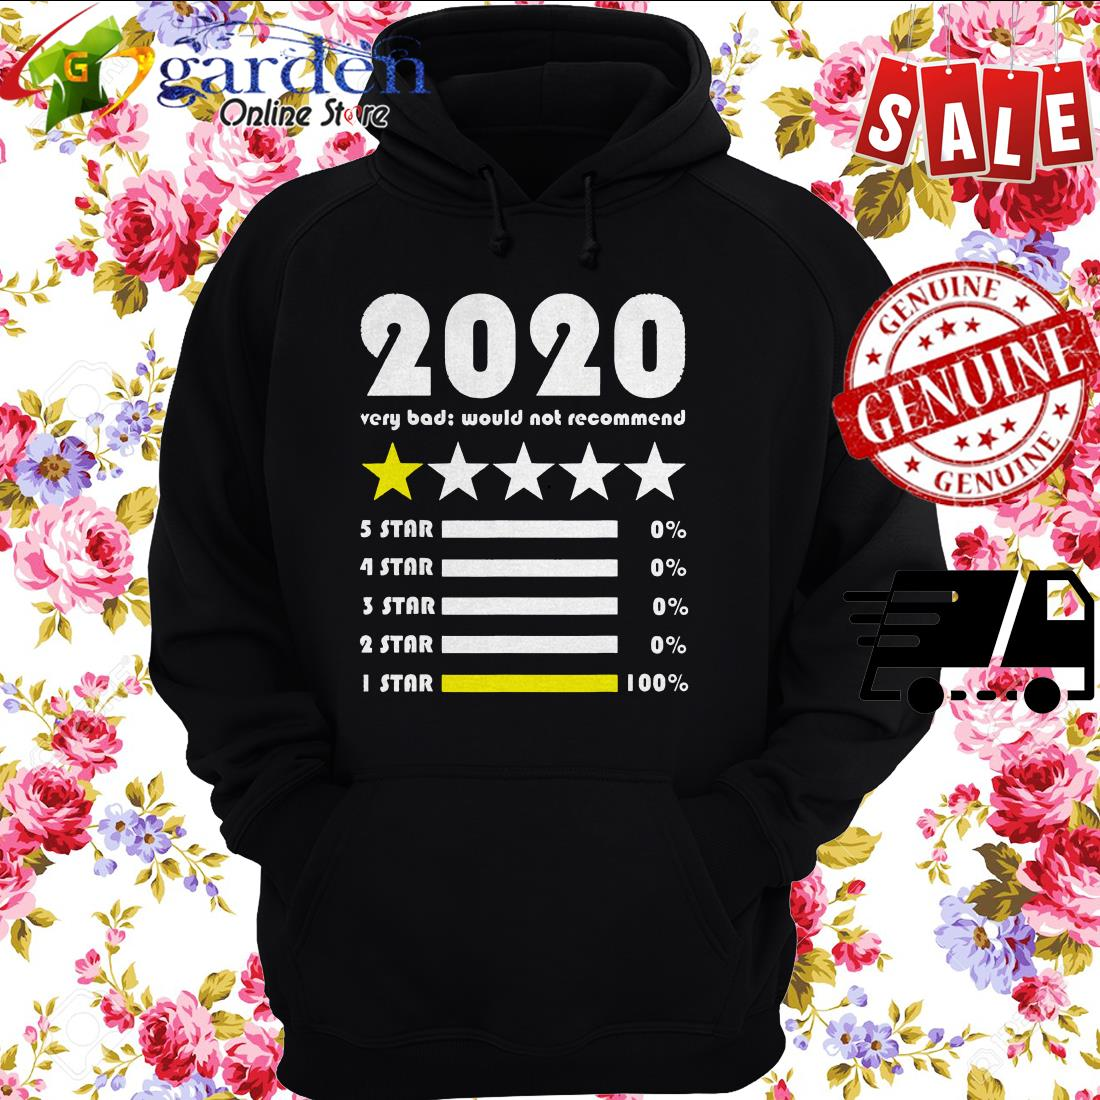 2020 rating very bad would not recommend hoodie